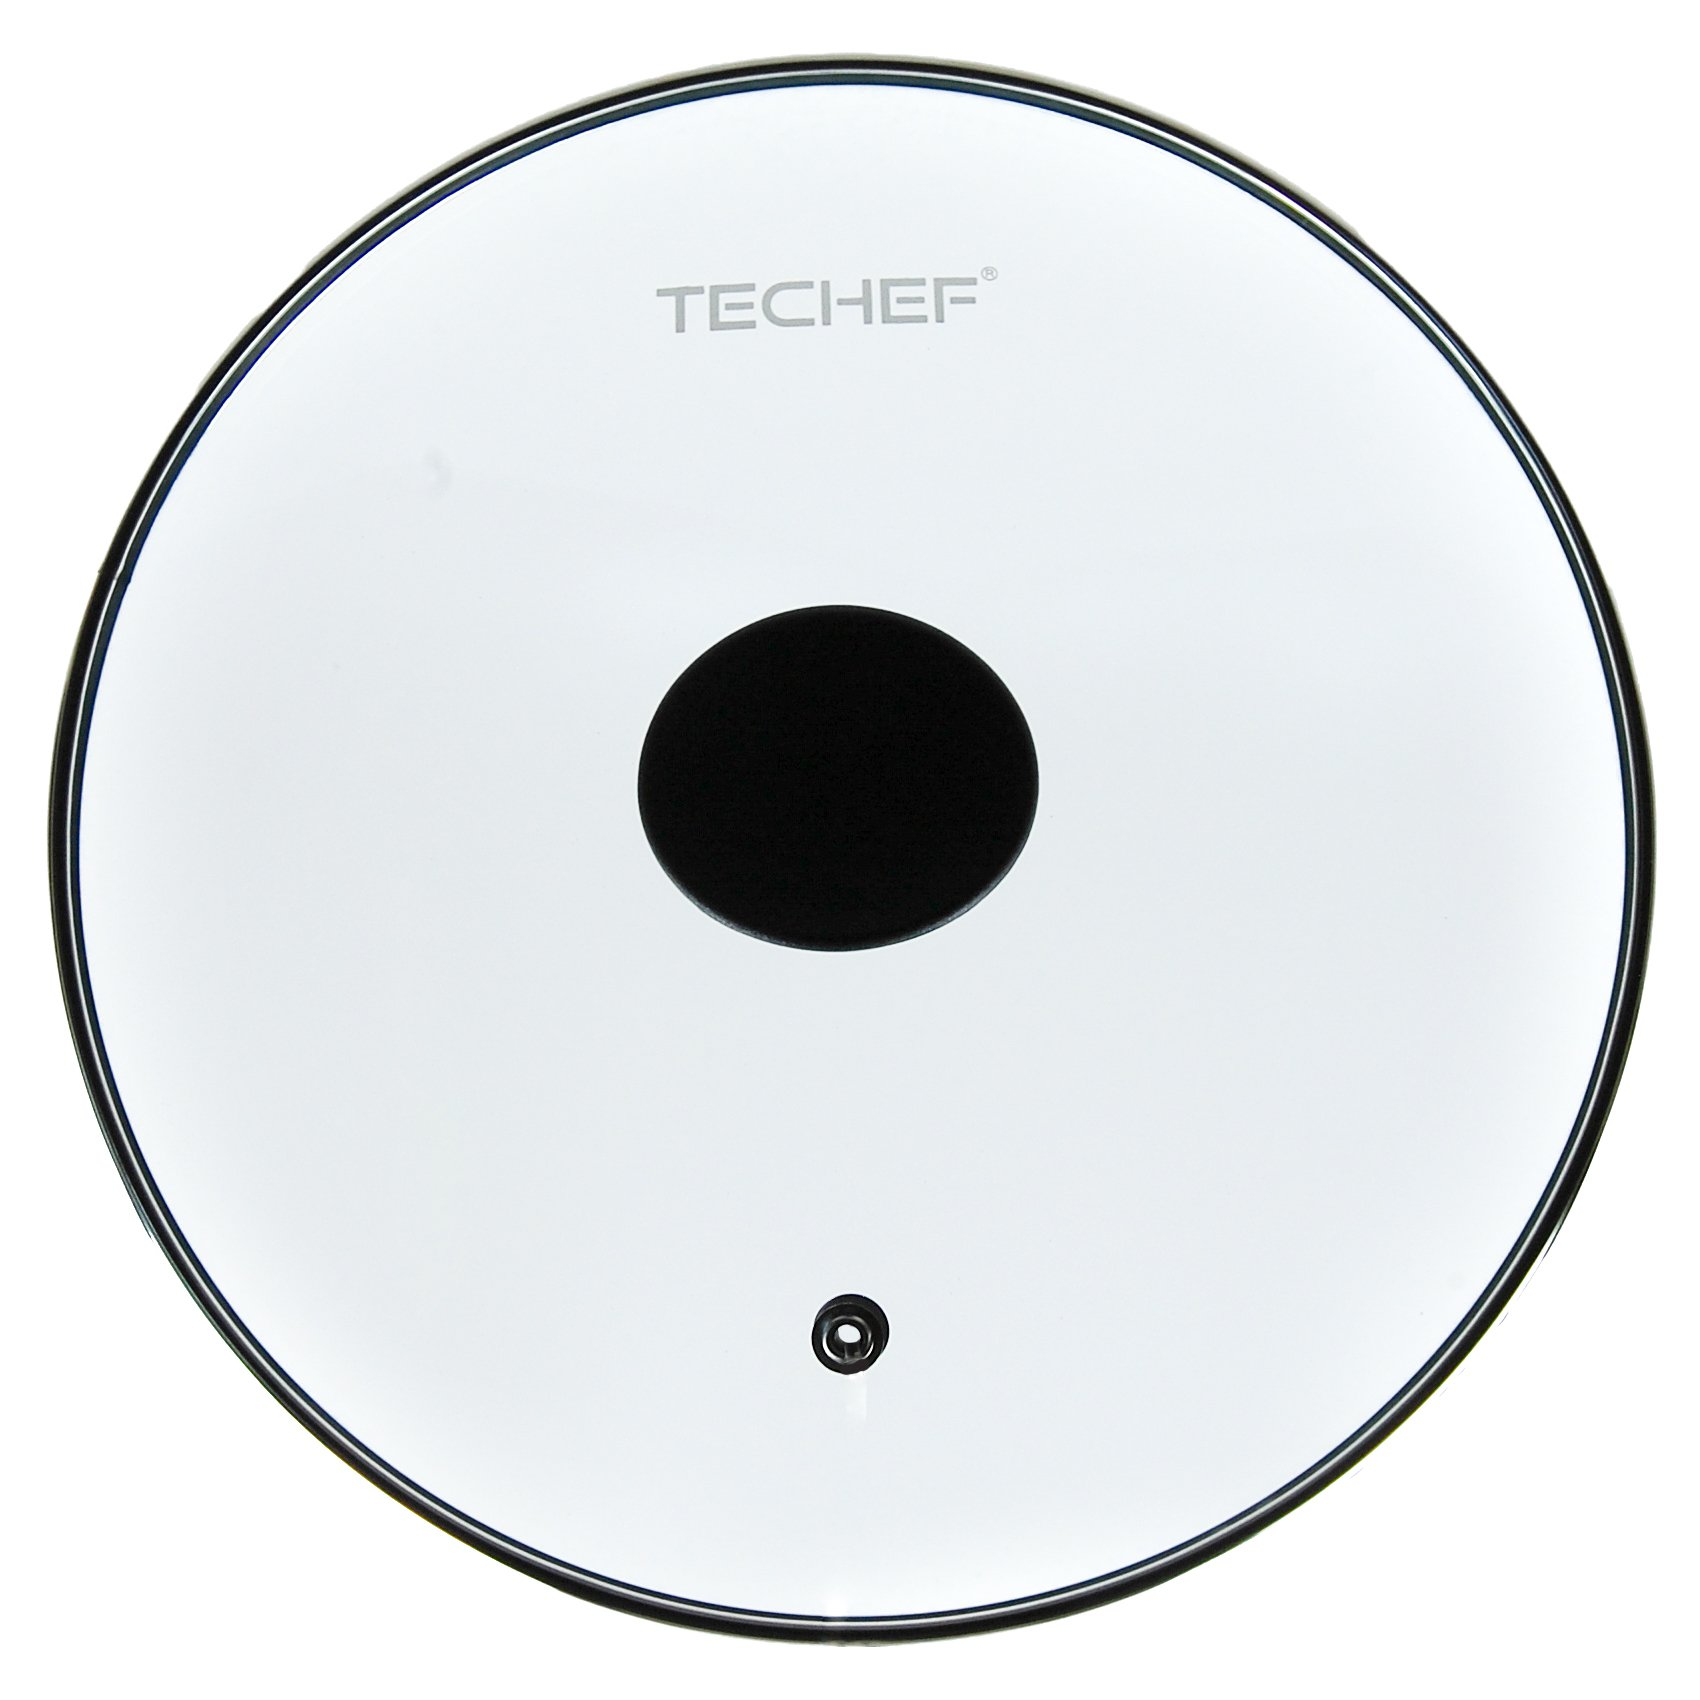 TeChef Cookware Tempered Glass Lid (12-Inch) by TECHEF (Image #1)